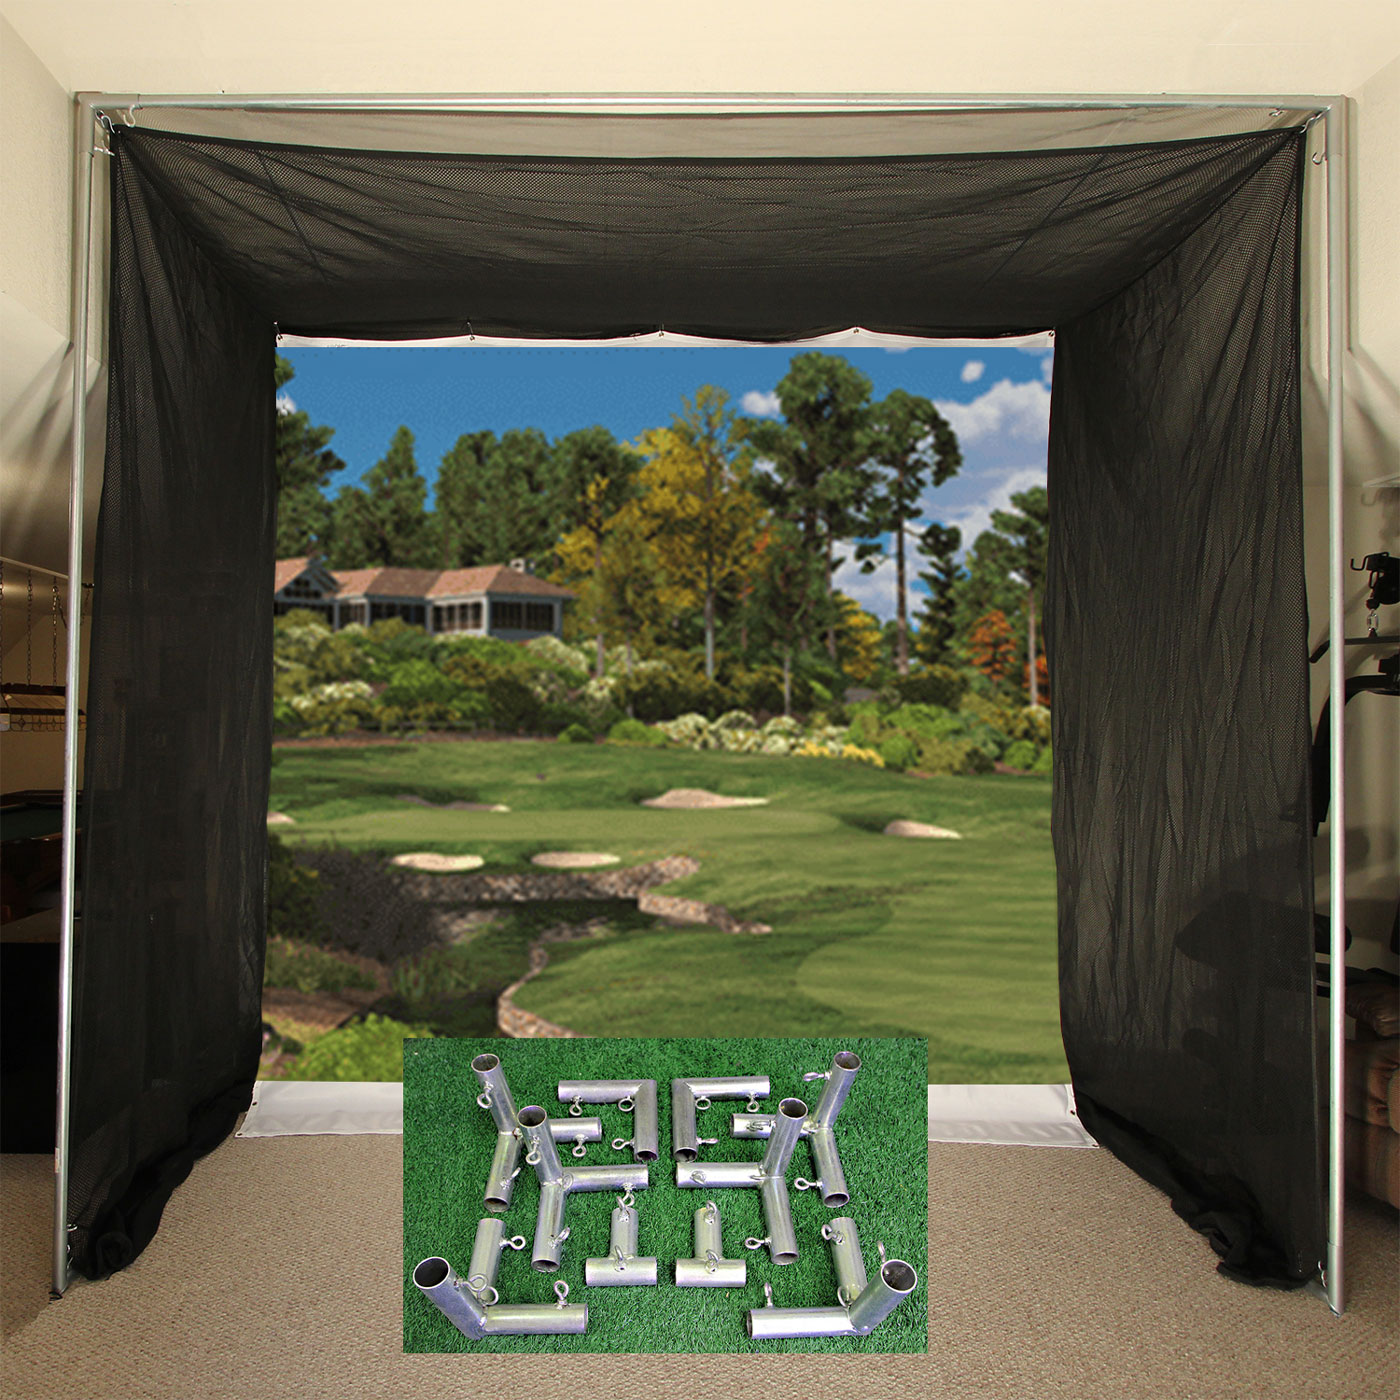 Packaging or Promotional image for Cimarron 5x10x10 Tour Simulator Archery Golf Net with Frame Kit